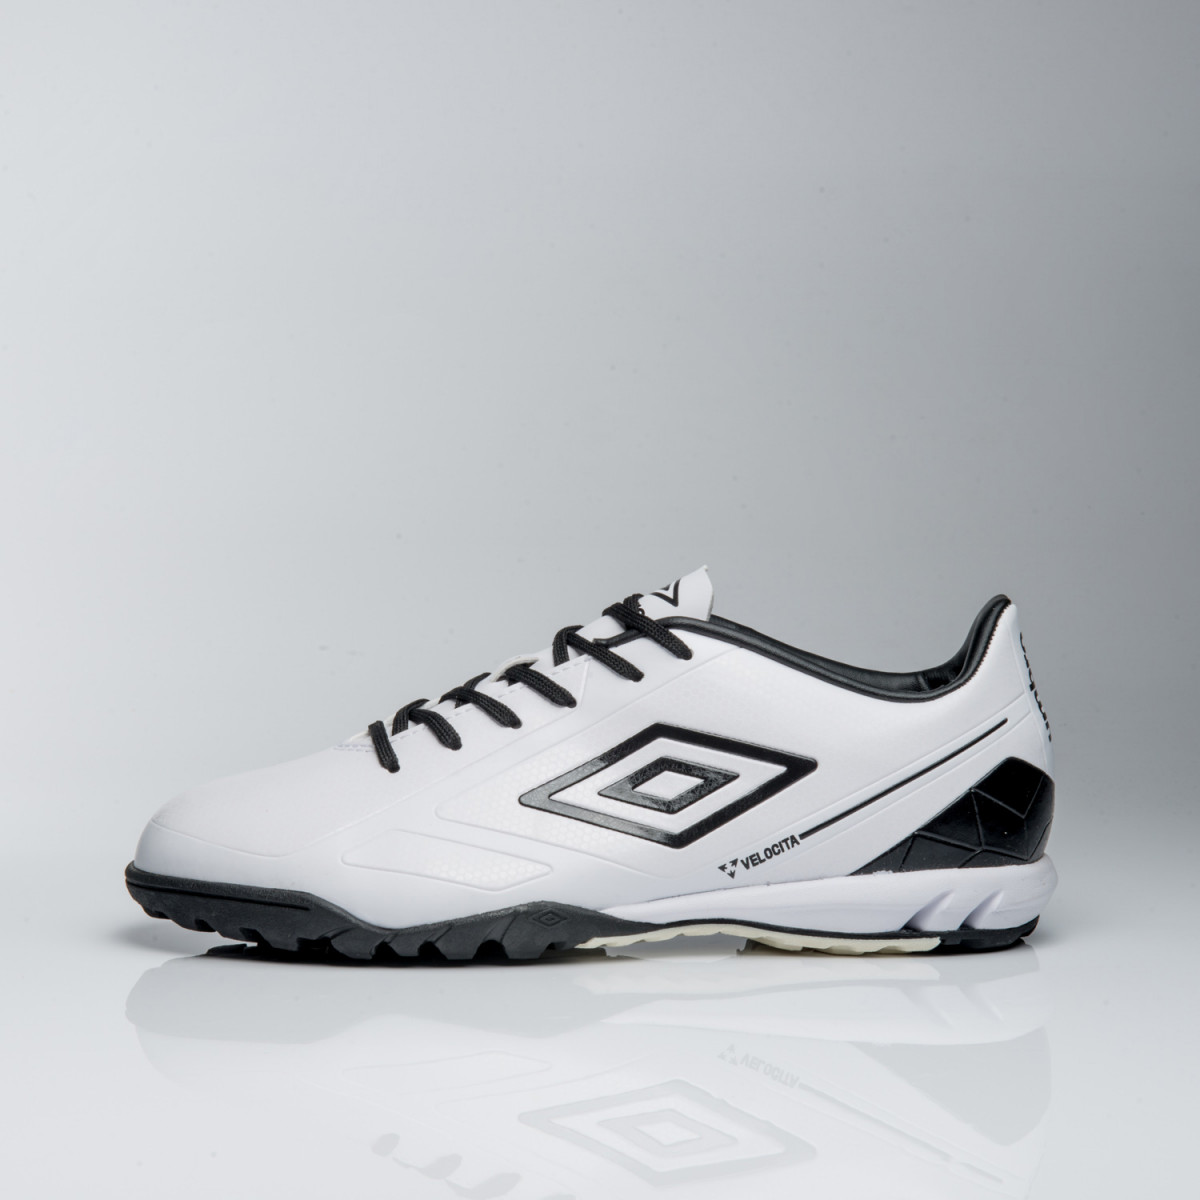 BOTINES UMBRO STY VELOCITA LEAGUE II